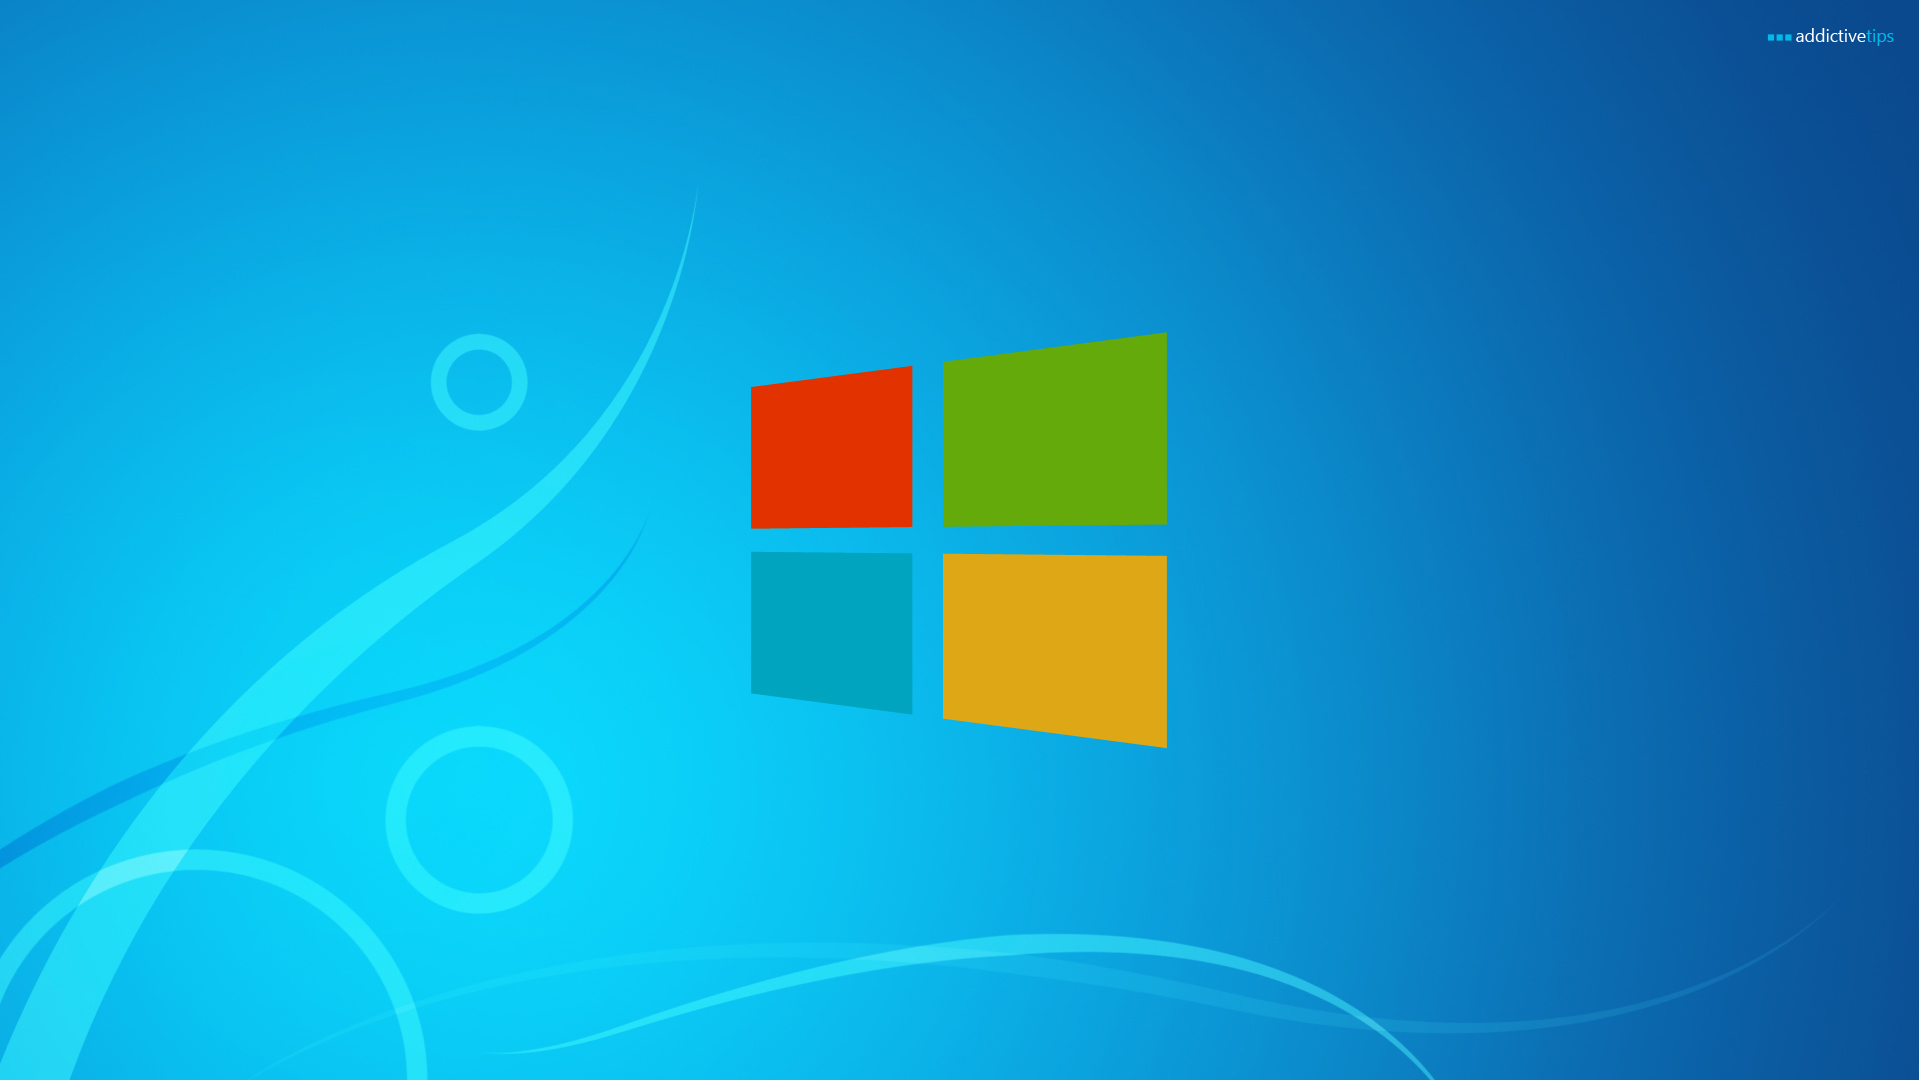 Windows 8 Wallpaper Windows 7 Spinoff White 2 1 1920x1080